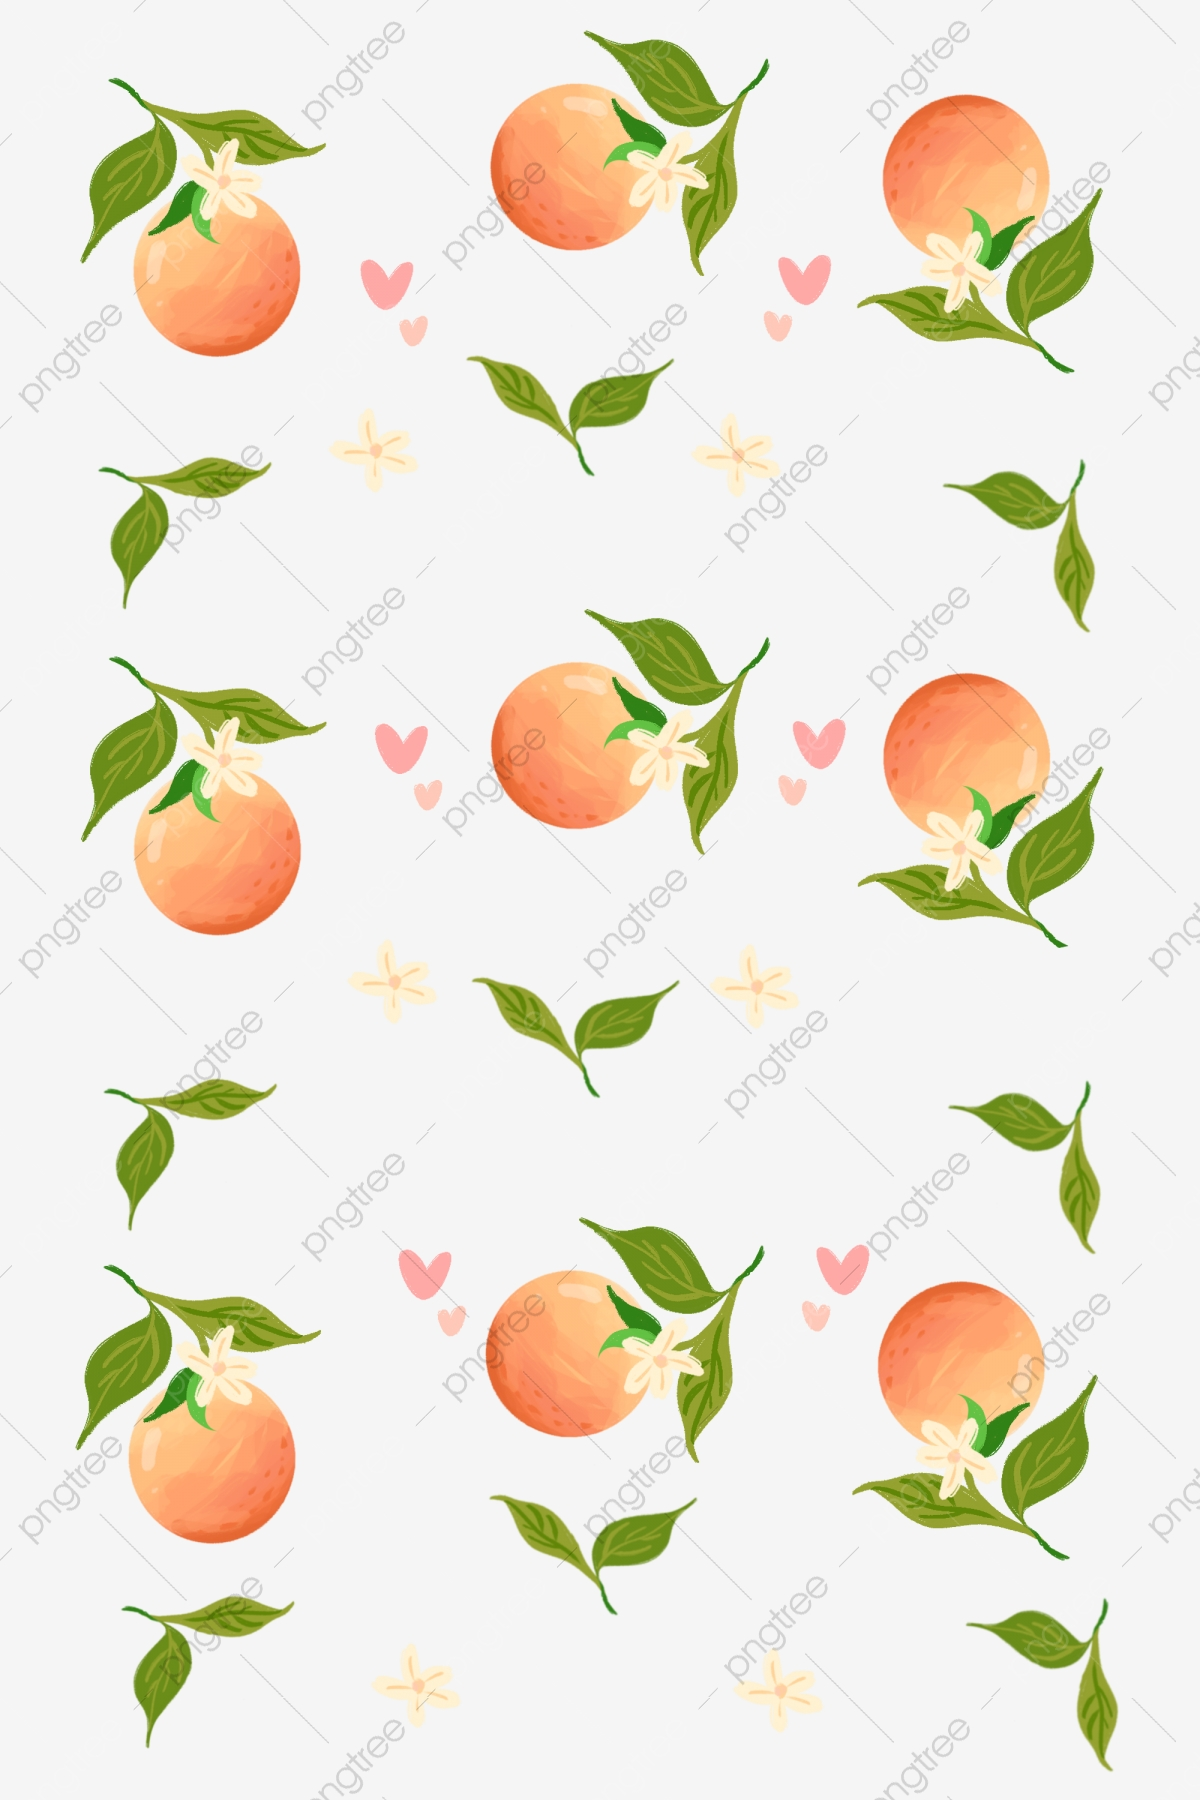 fruit shading wallpaper background fruit apple peach png transparent clipart image and psd file for free download https pngtree com freepng fruit shading wallpaper background 4763908 html